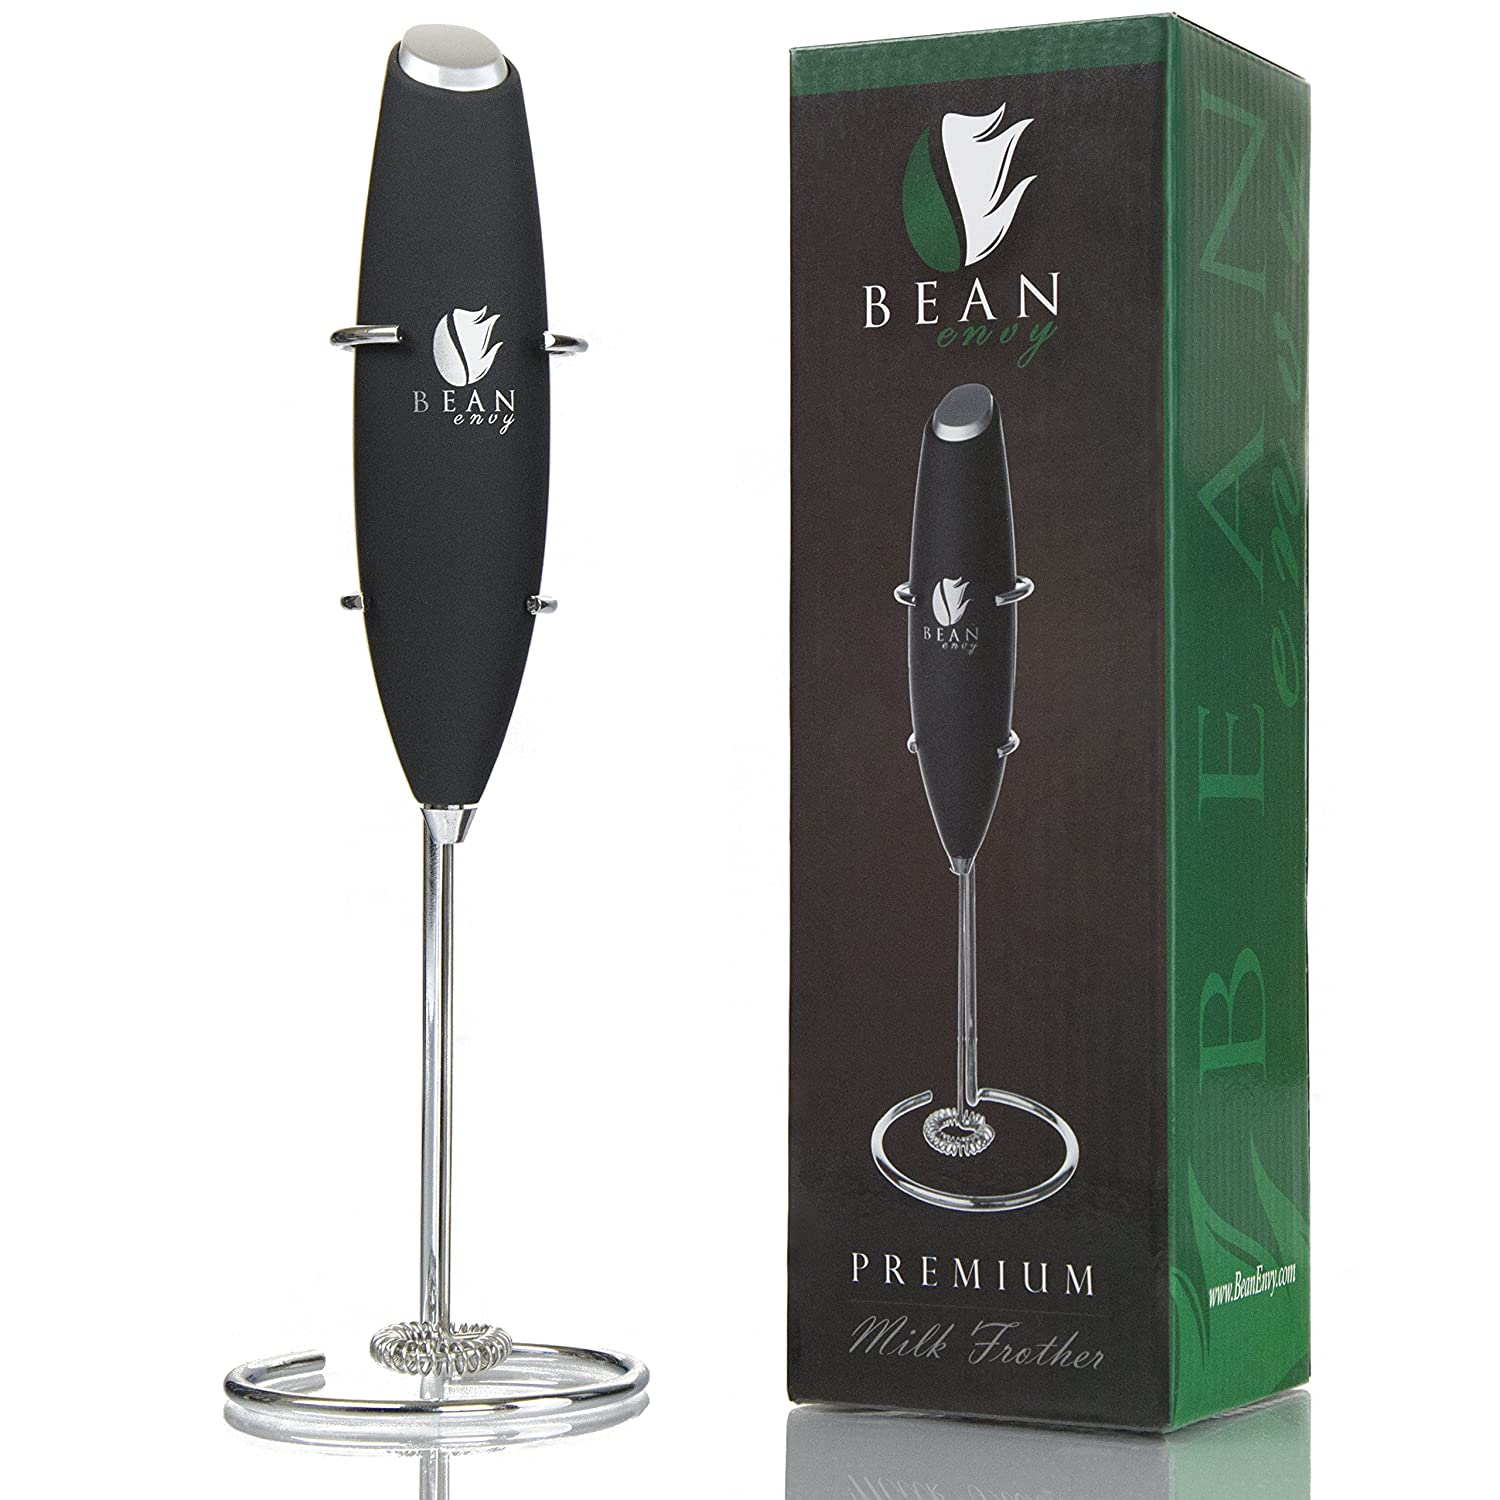 Bean Envy Electric Milk Frother Review